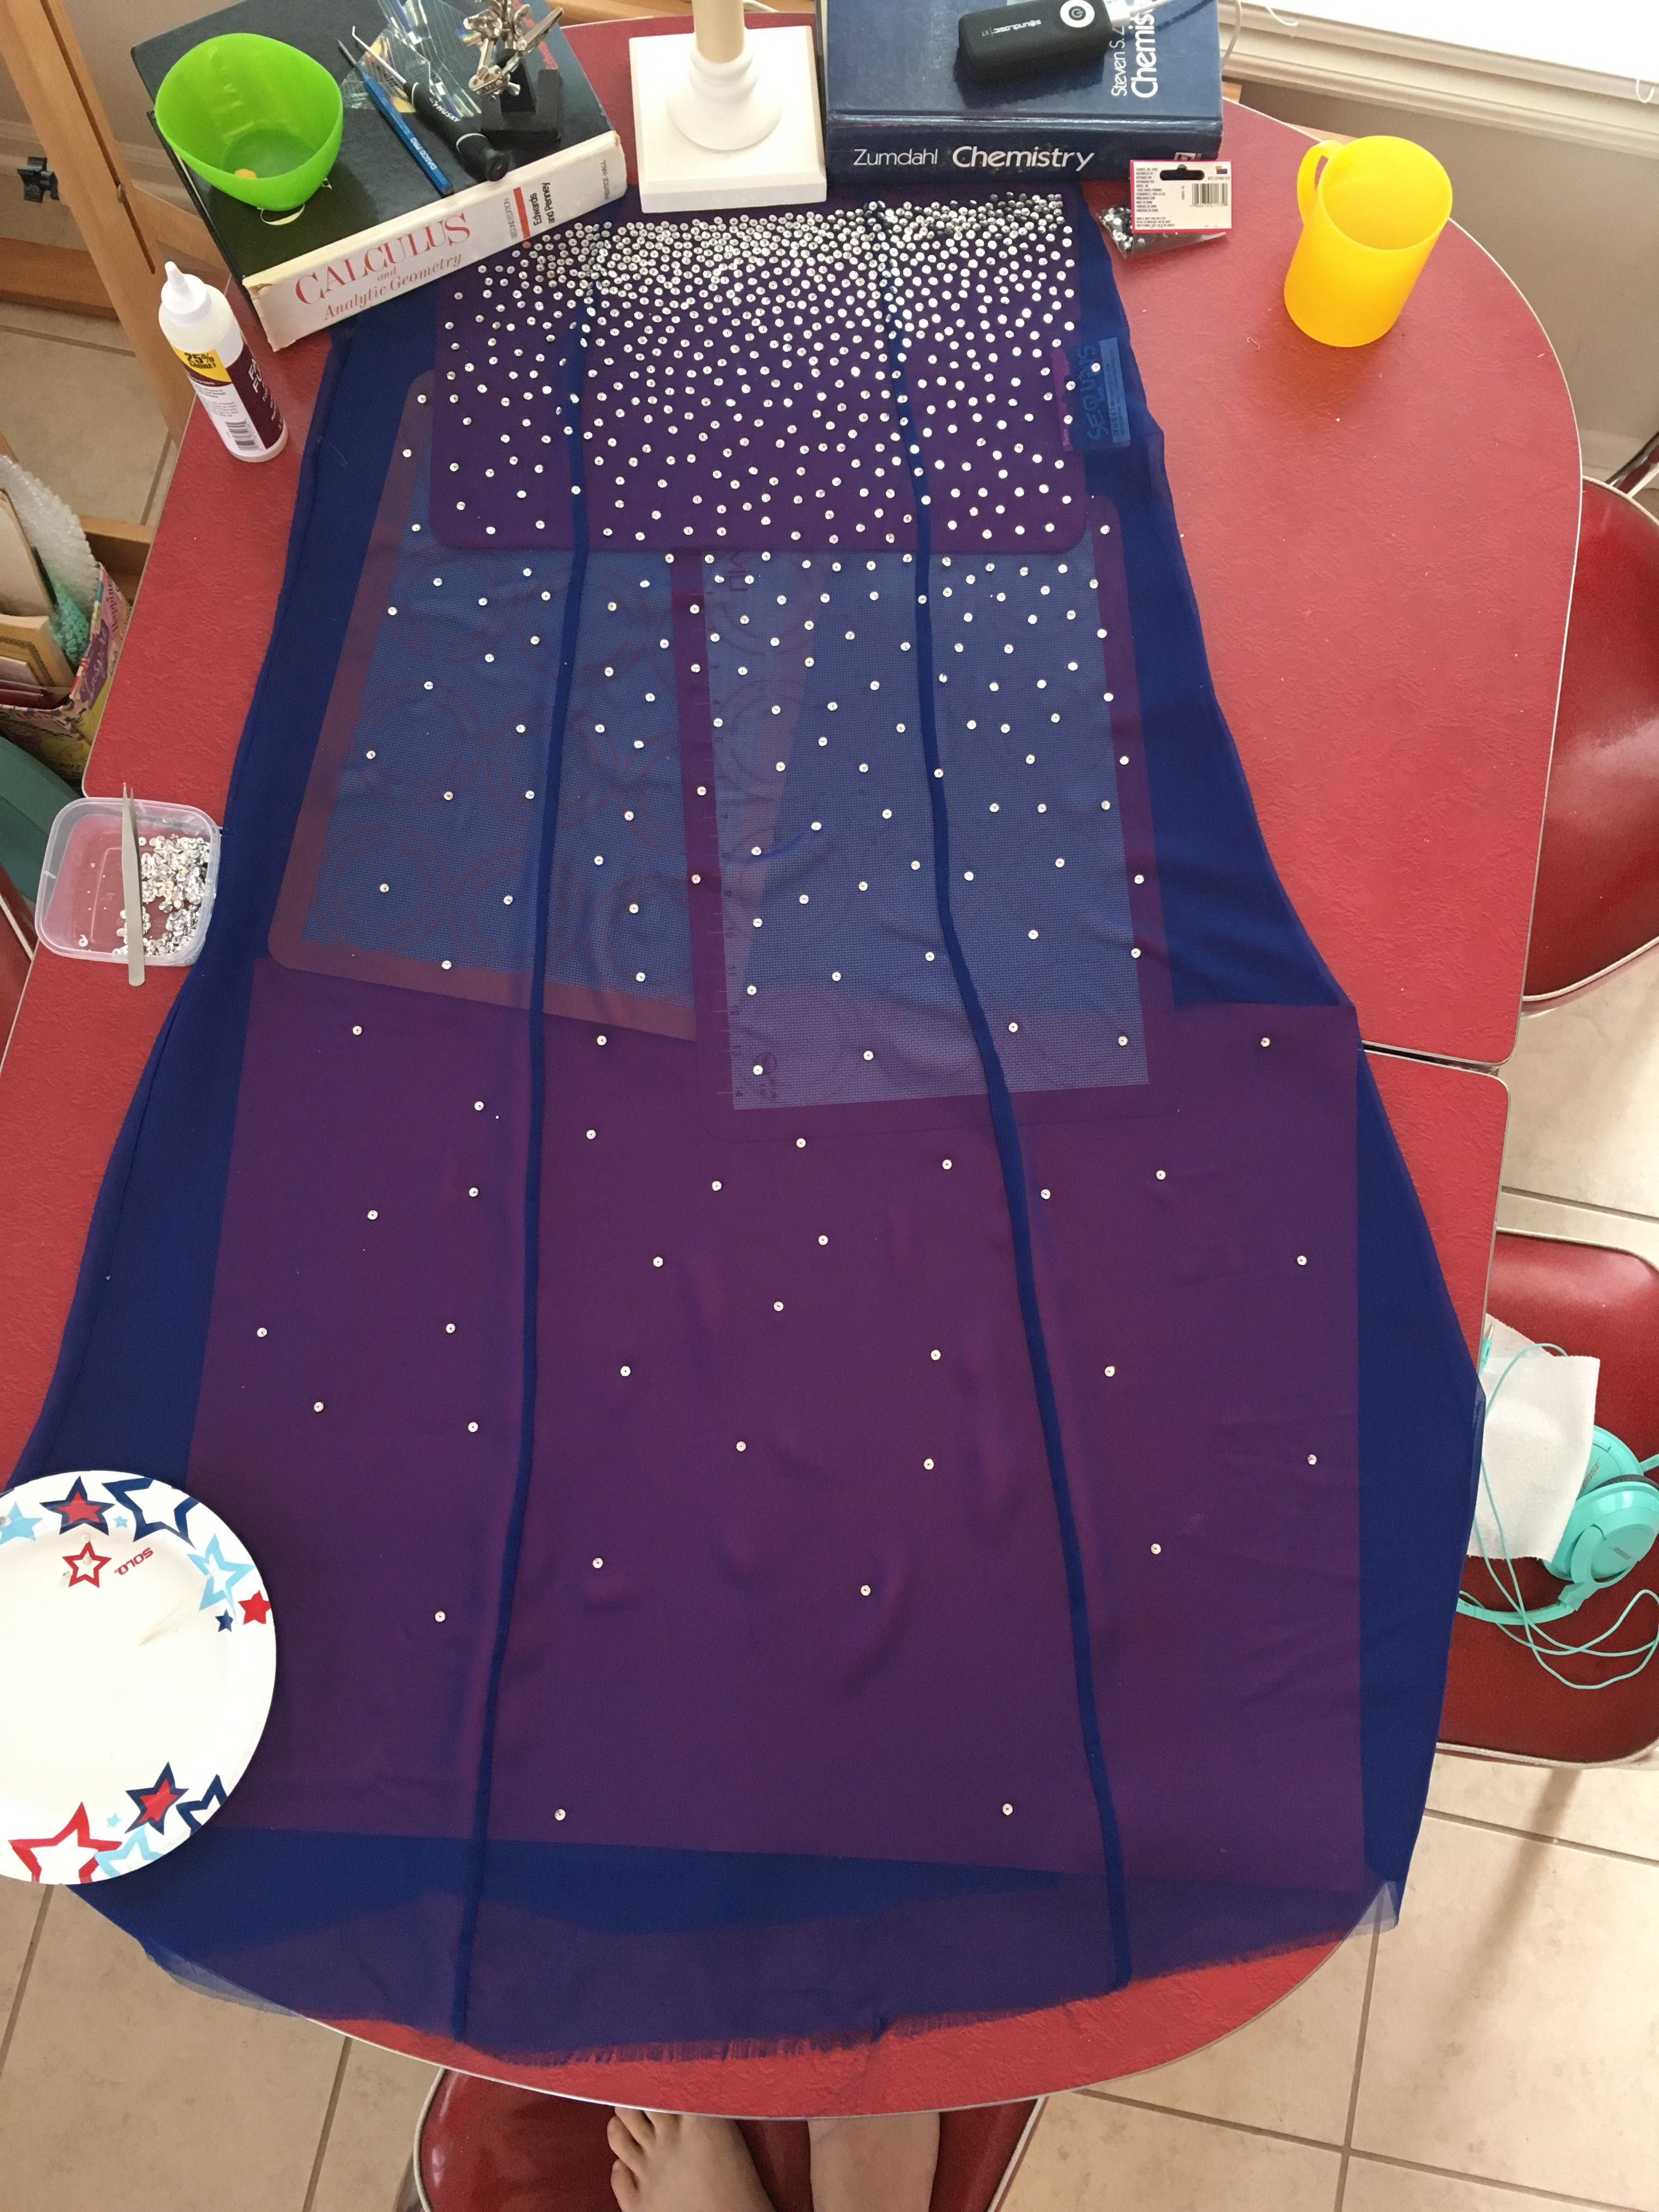 It took 12 hours over the course of two days to glue all the sequins to the sheer